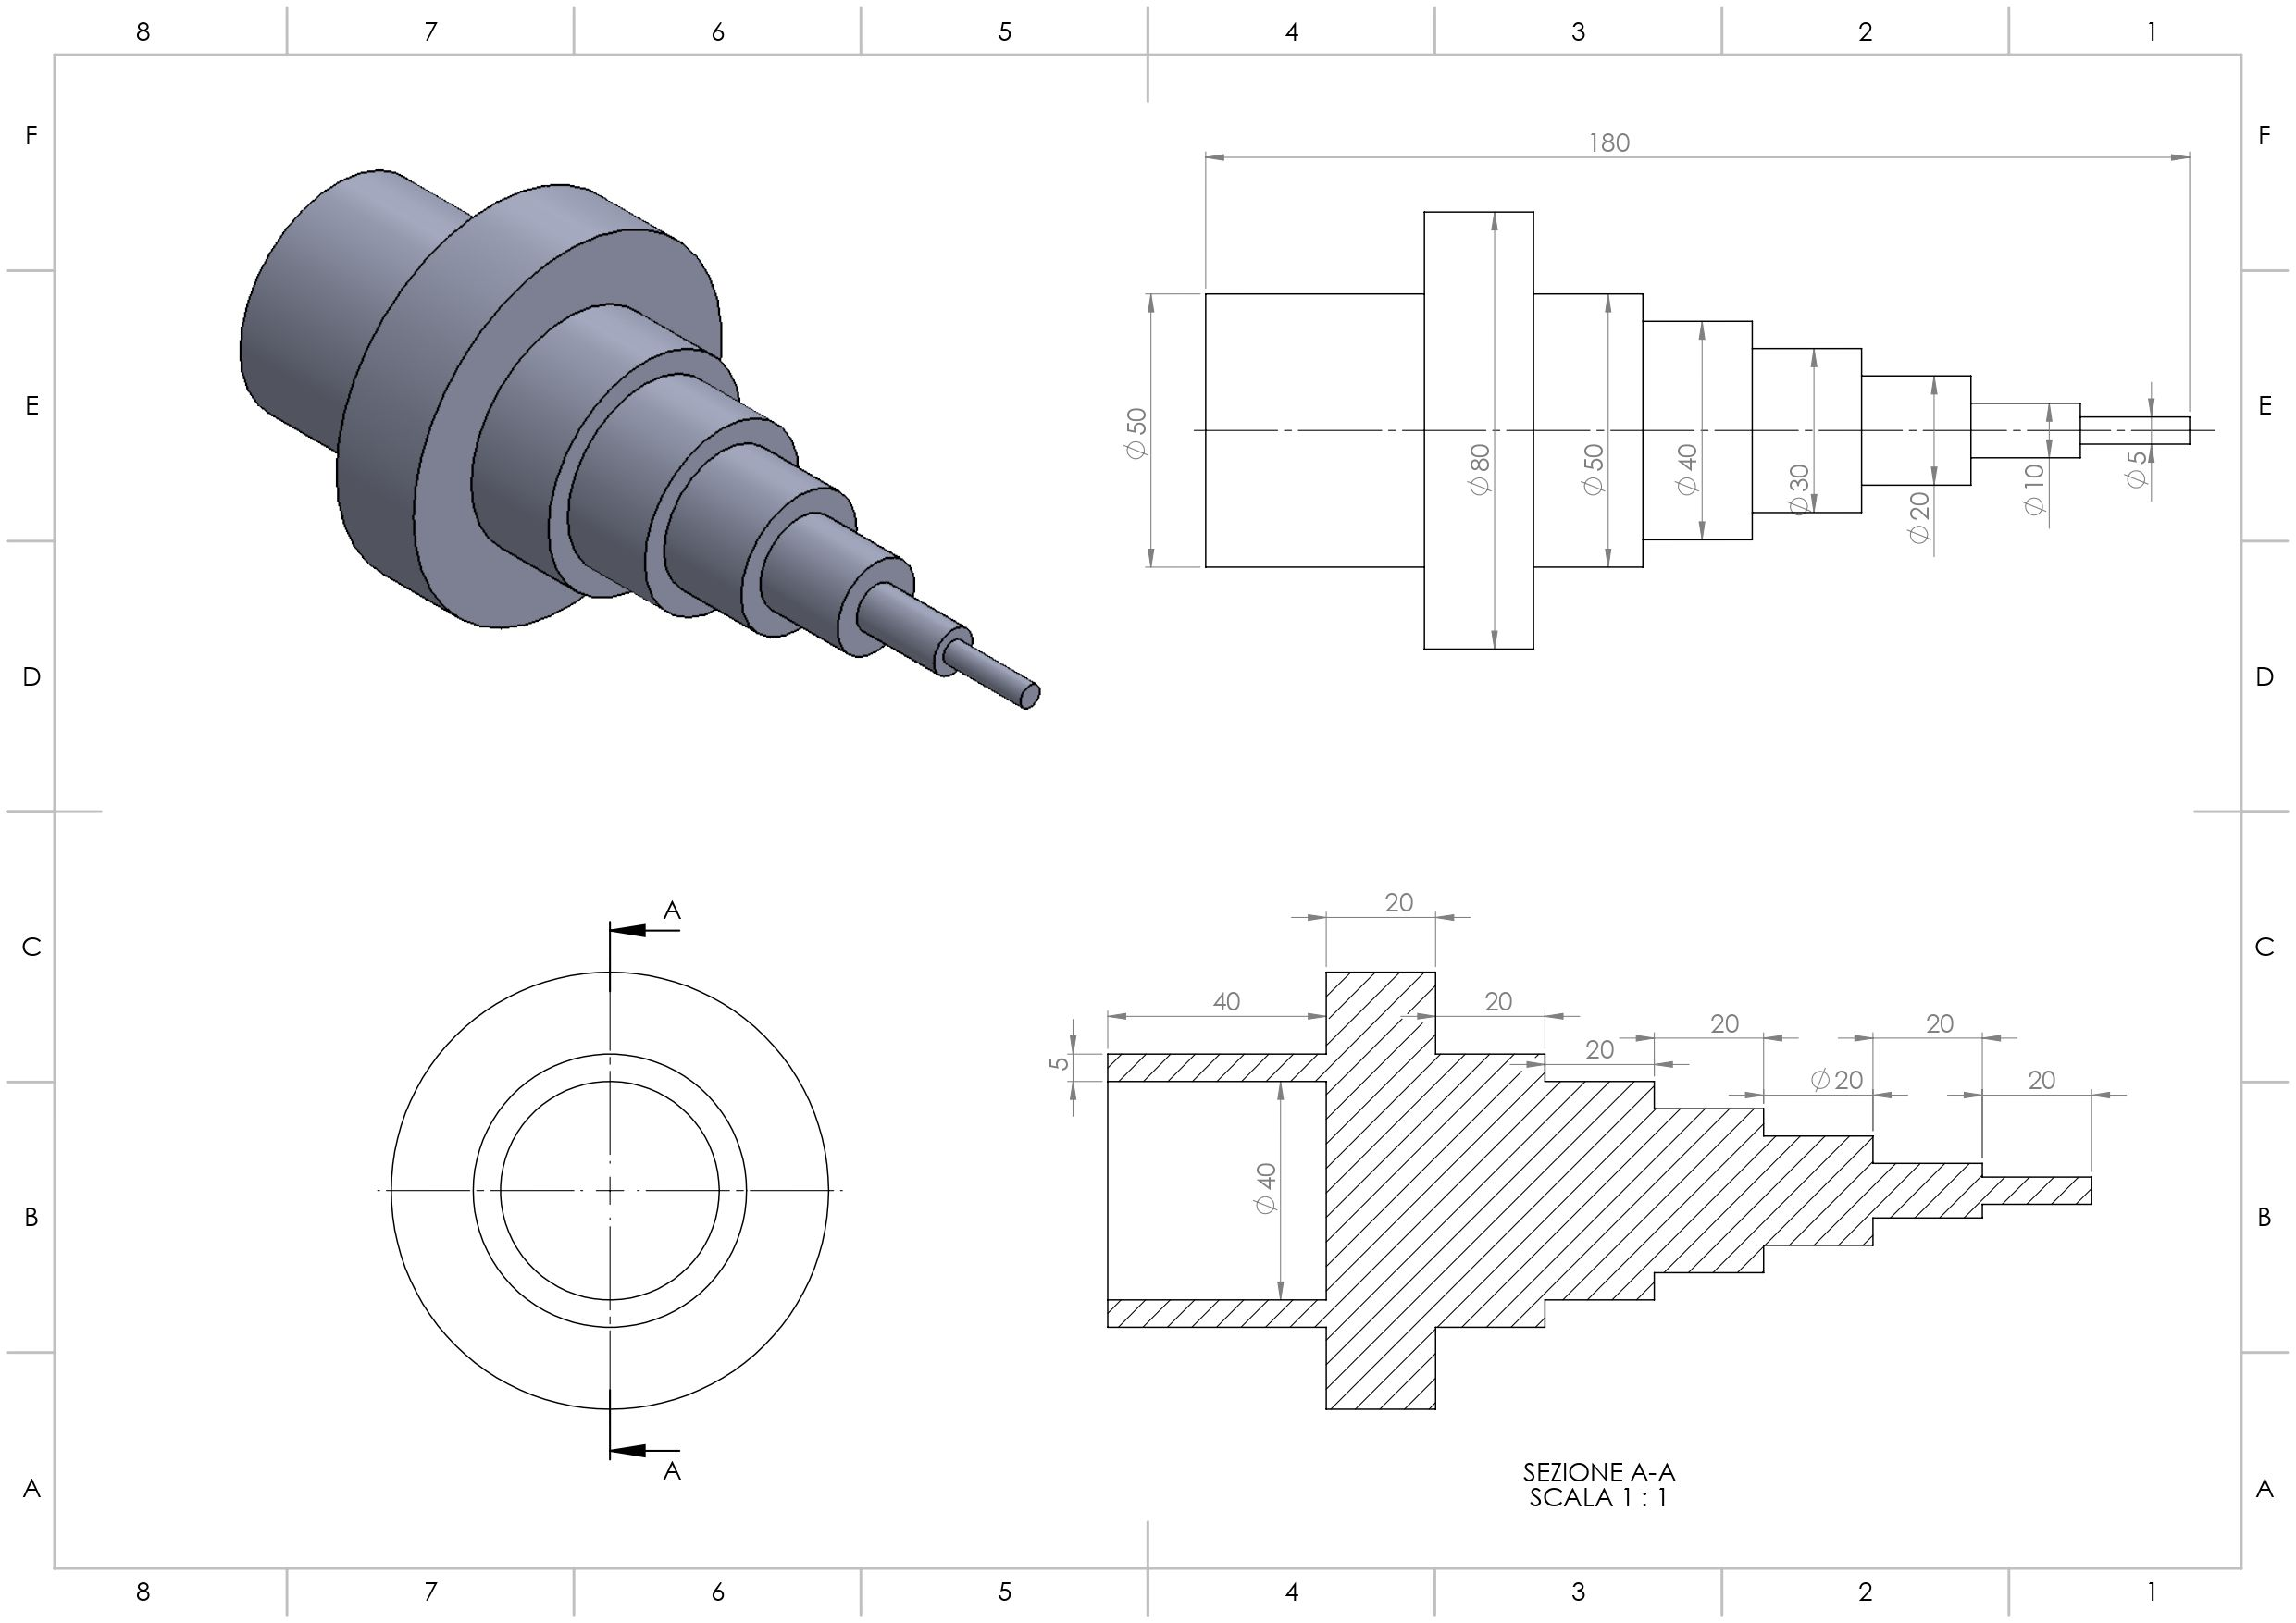 Solidworks Esercizio Pratica Disegno Meccanico In 2020 Mechanical Design Mechanical Engineering Design Solidworks